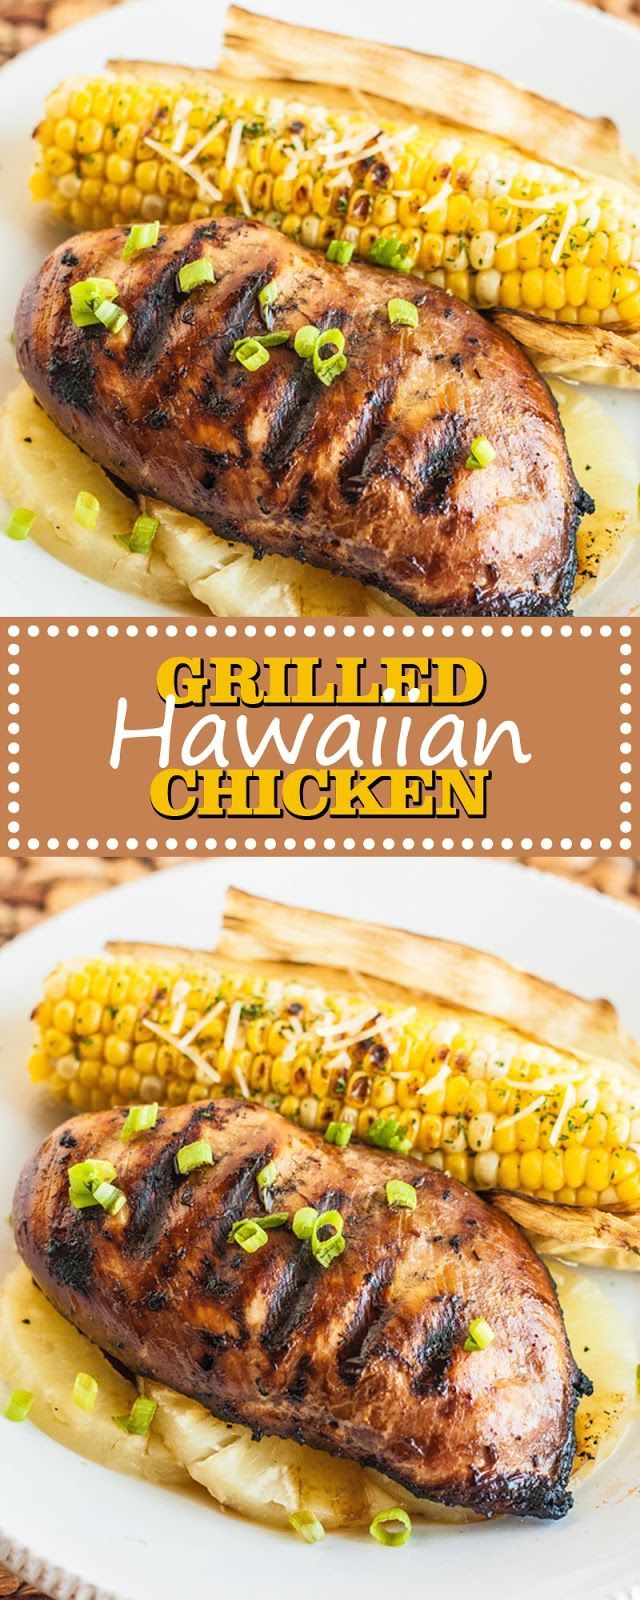 GRILLED HAWAIIAN CHICKEN - Food Recipes #hawaiianfoodrecipes GRILLED HAWAIIAN CHICKEN - Food Recipes #hawaiianfoodrecipes